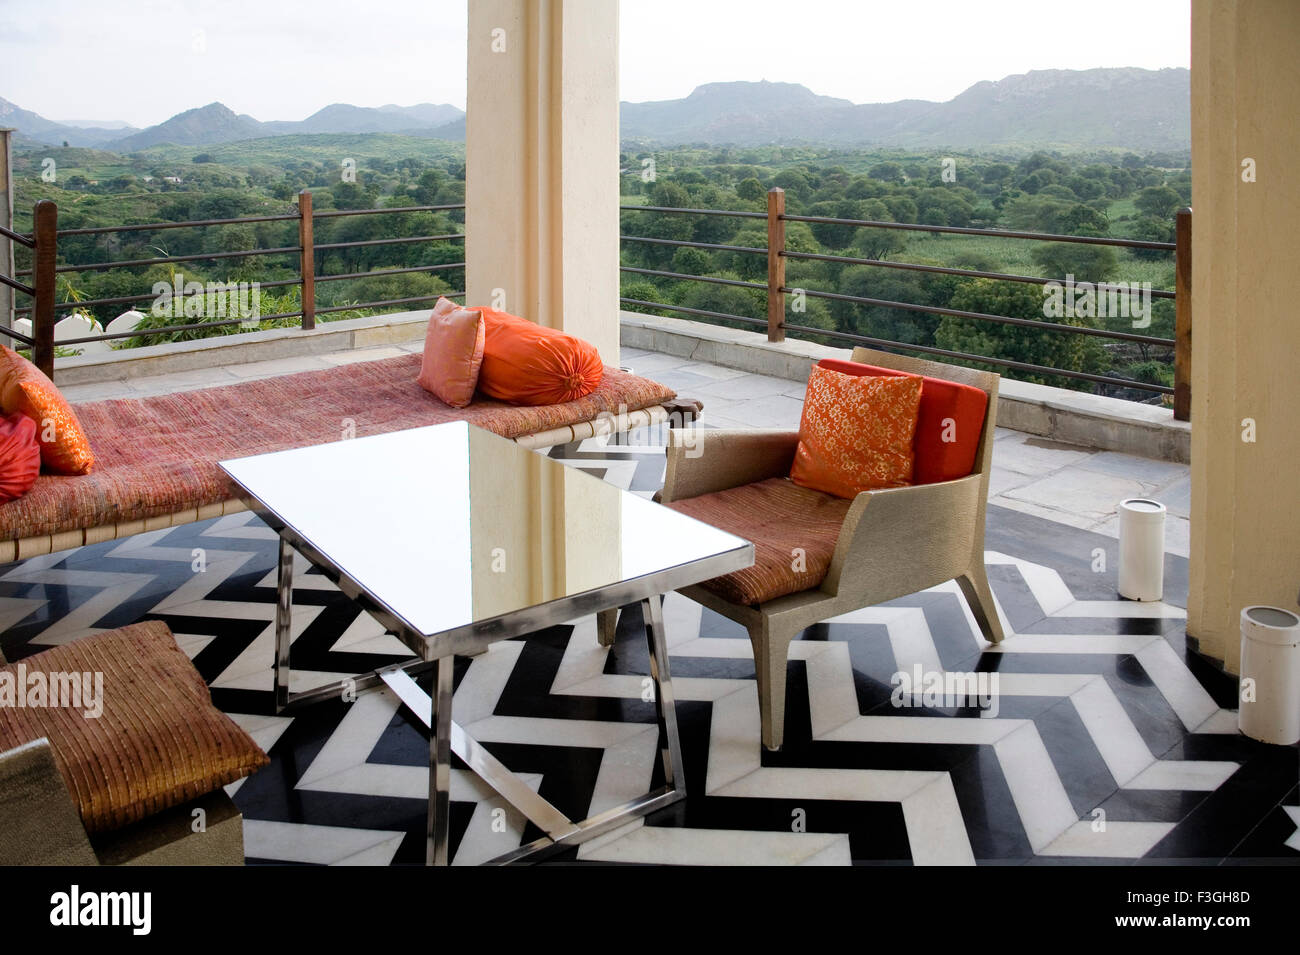 marble flooring chairs bed balcony restful luxury royal setup rich palace Devigadh turned hotel Village Dilwara - Stock Image